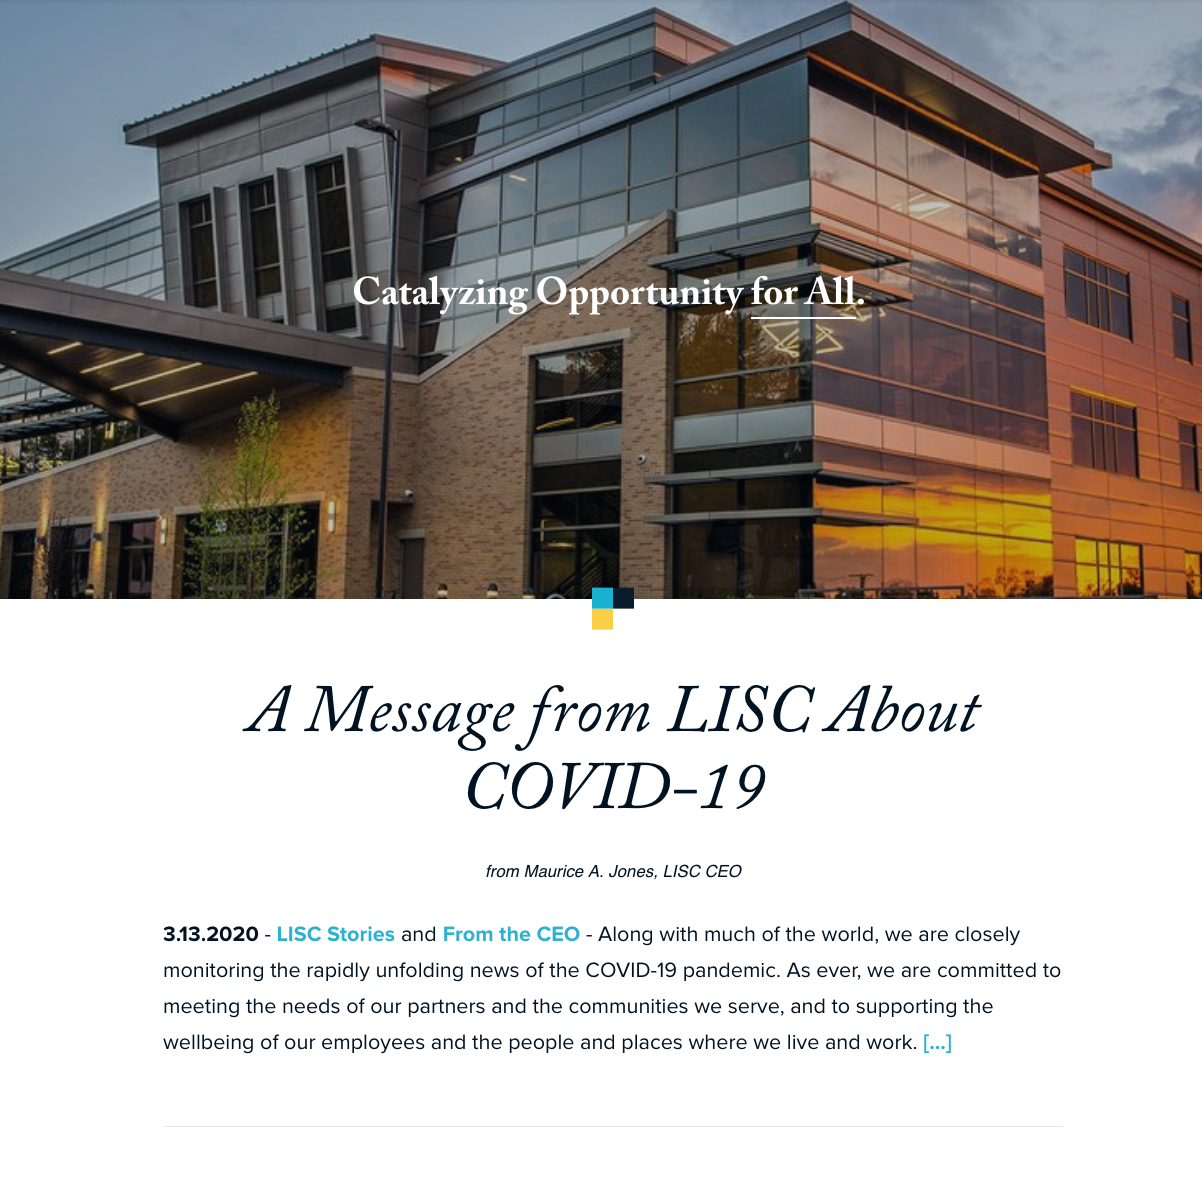 A message from LISC CEO Maurice Jones